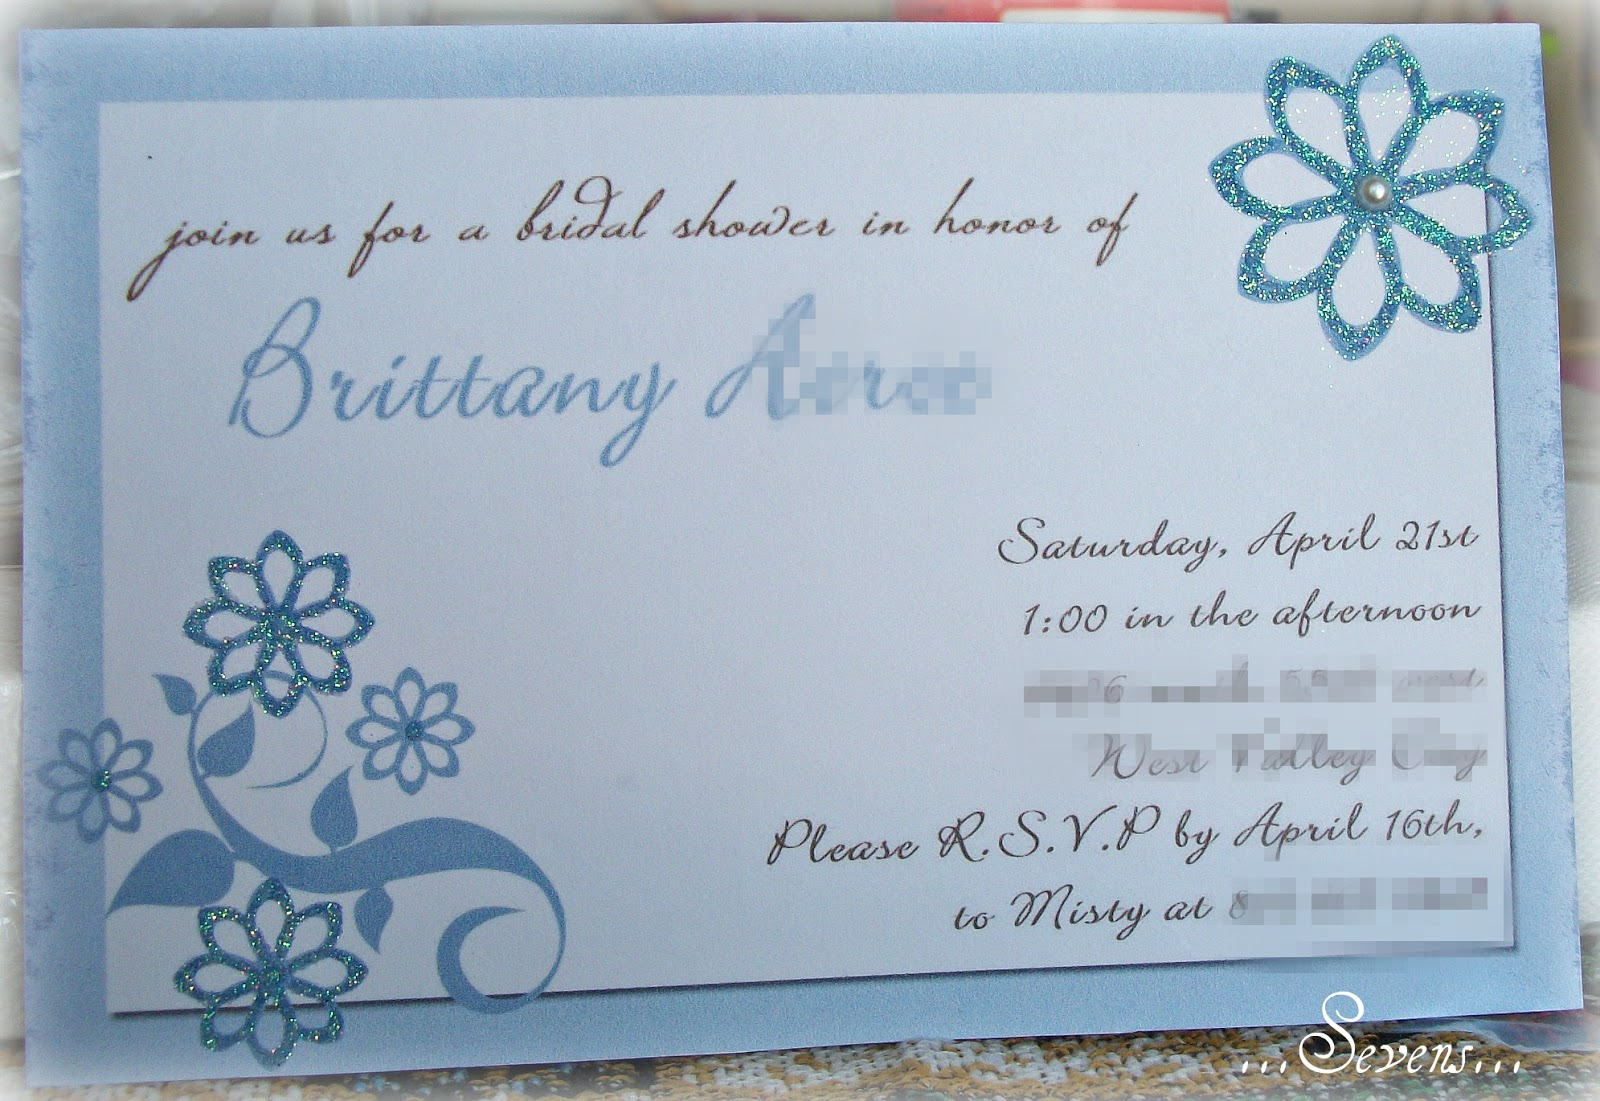 My Memories Bridal Shower Invitations, and Free Photobook Offer